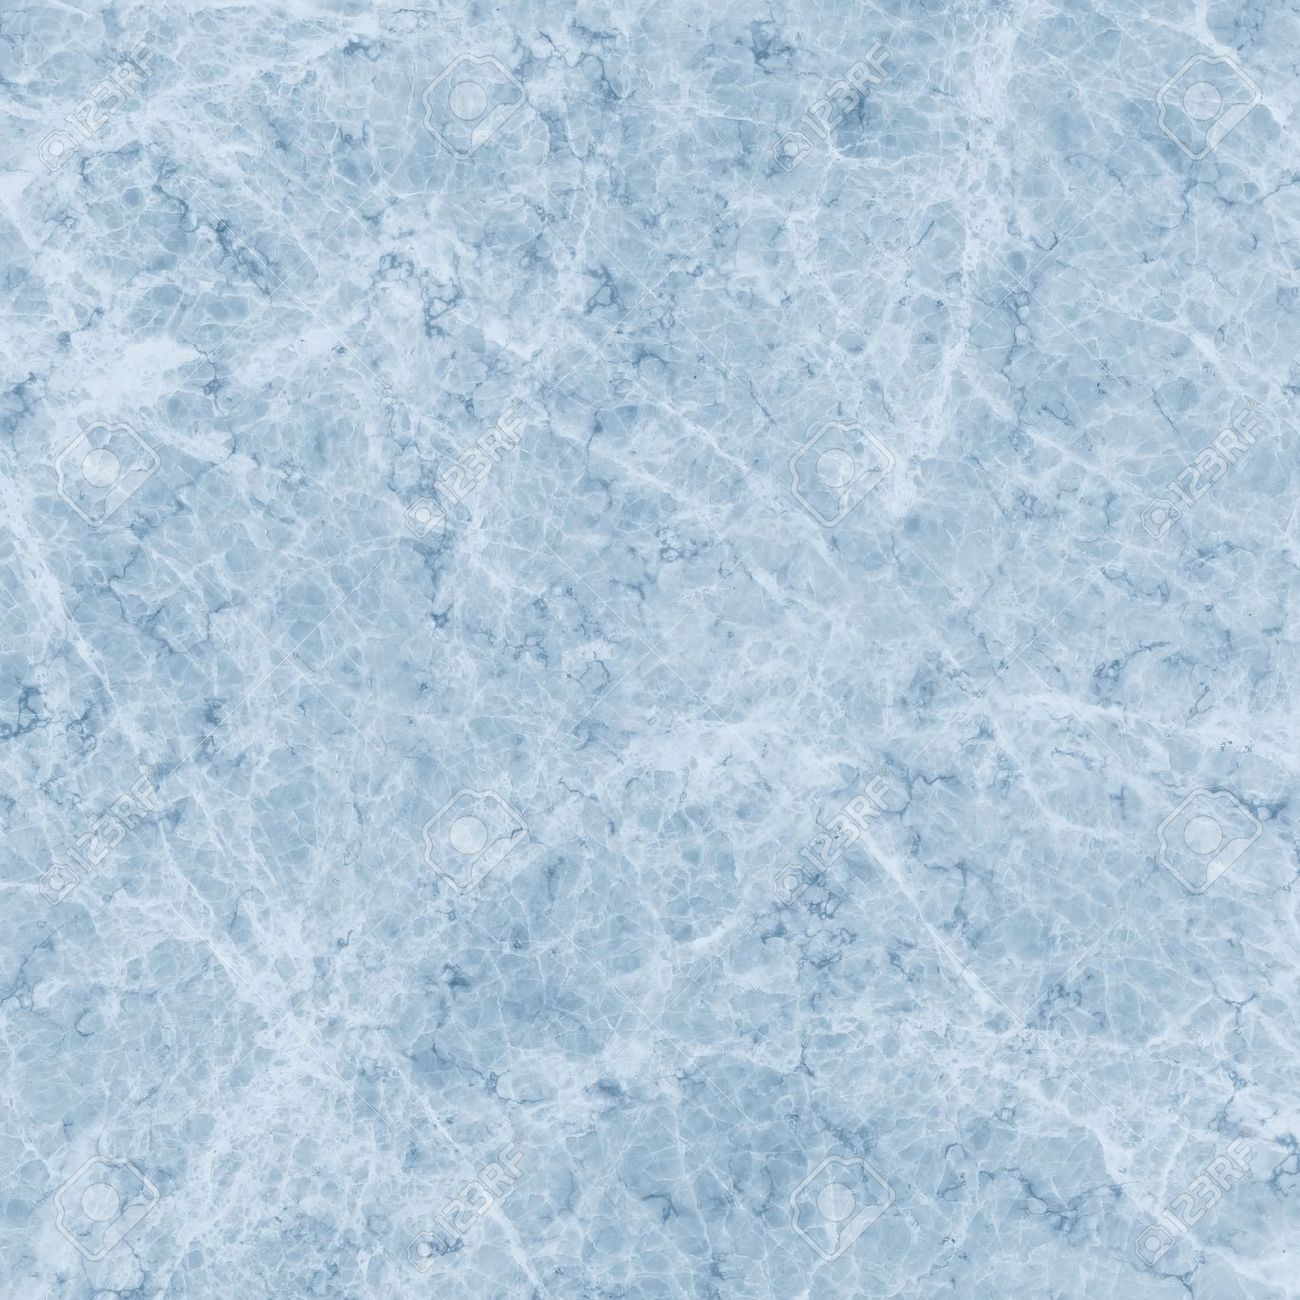 Light Blue Marble : Light blue marble texture imgkid the image kid